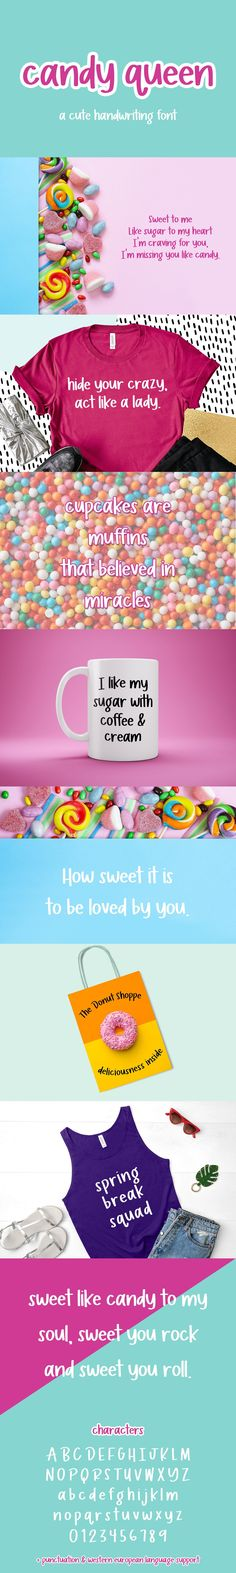 Download Candy Queen Sans Font (852418) today! We have a huge range of Display products available. Commercial License Included. Sweet Like Candy, Brand Fonts, Cricut Fonts, Classroom Projects, Graphic Quotes, Handwriting Fonts, Modern Fonts, Social Media Logos, Silhouette Projects